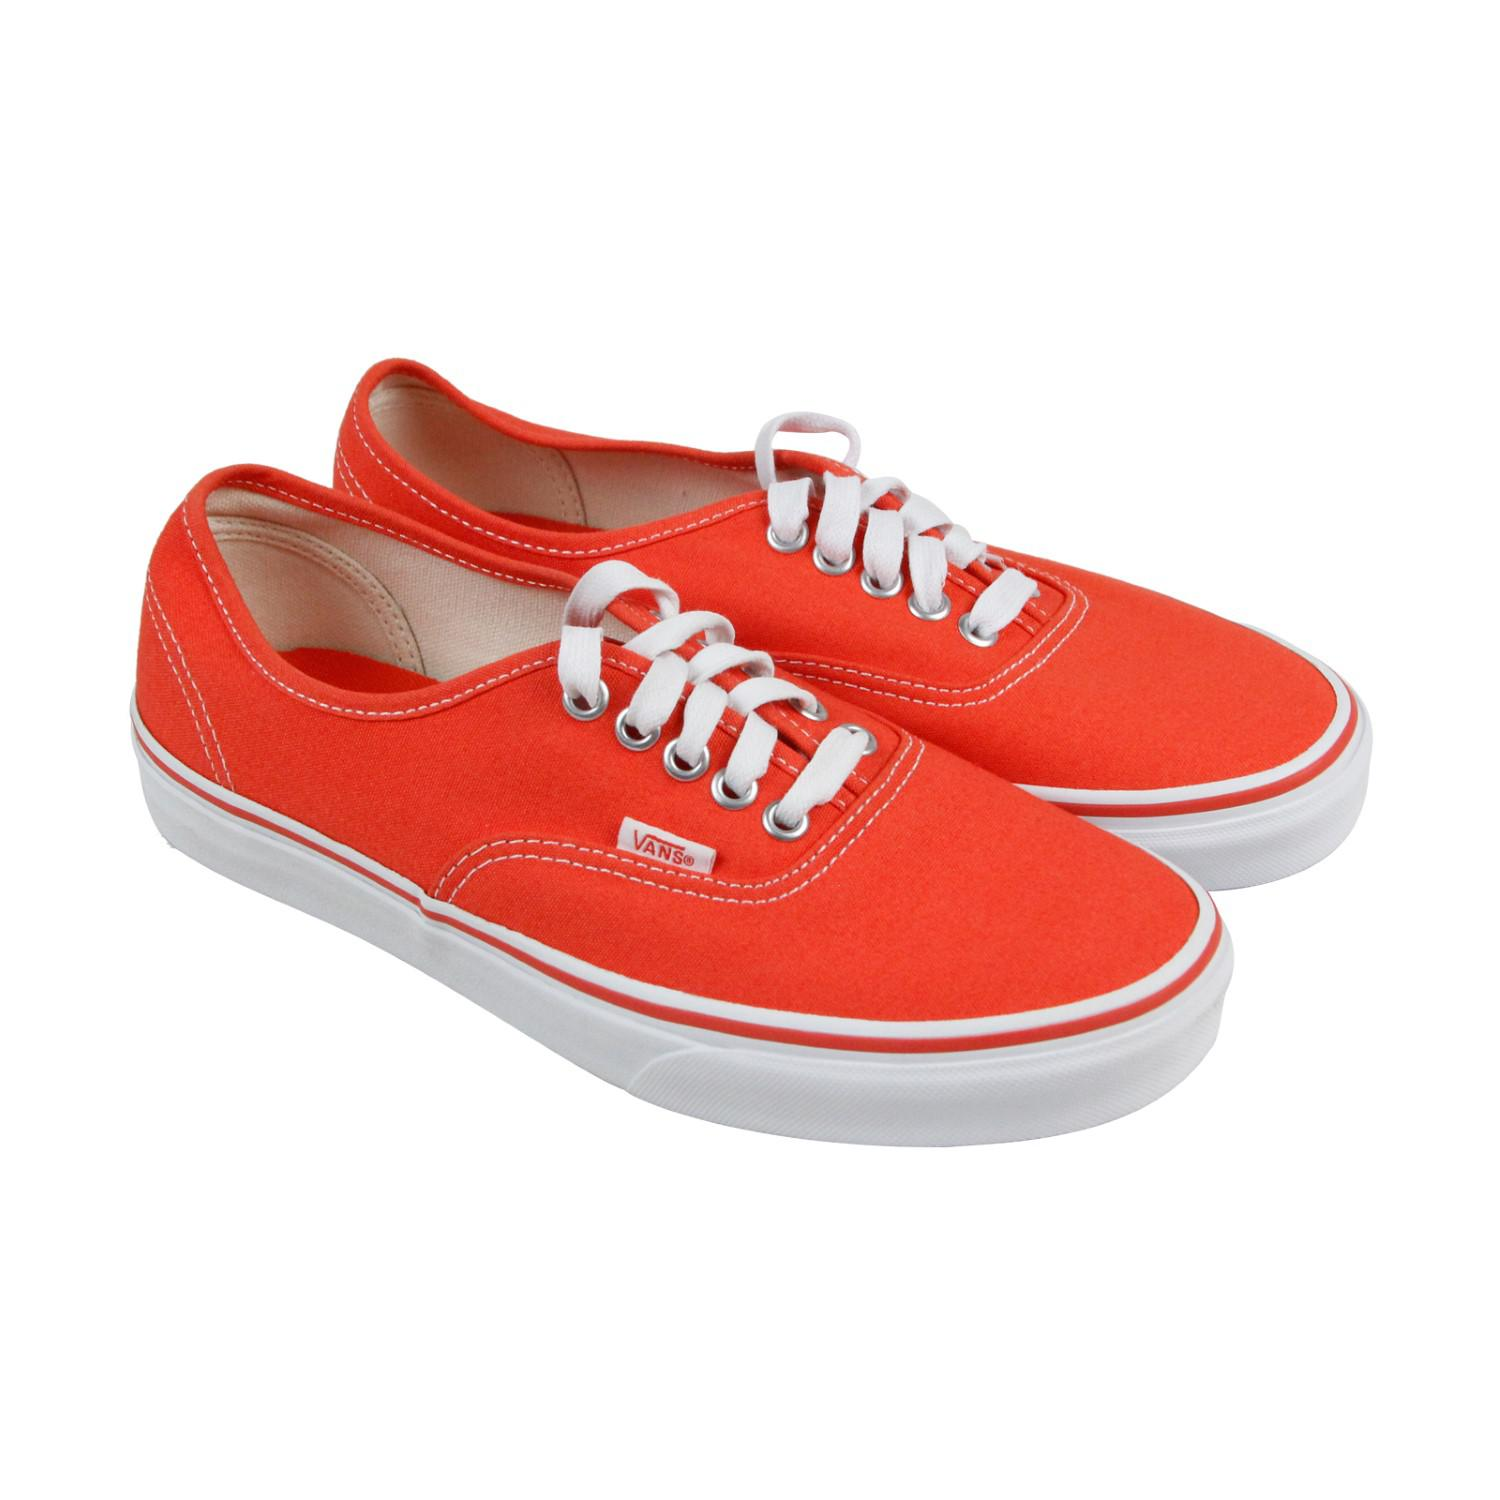 7b06f029b8 Lyst - Vans Authentic Cherry Tomato True White Mens Lace Up Sneakers ...